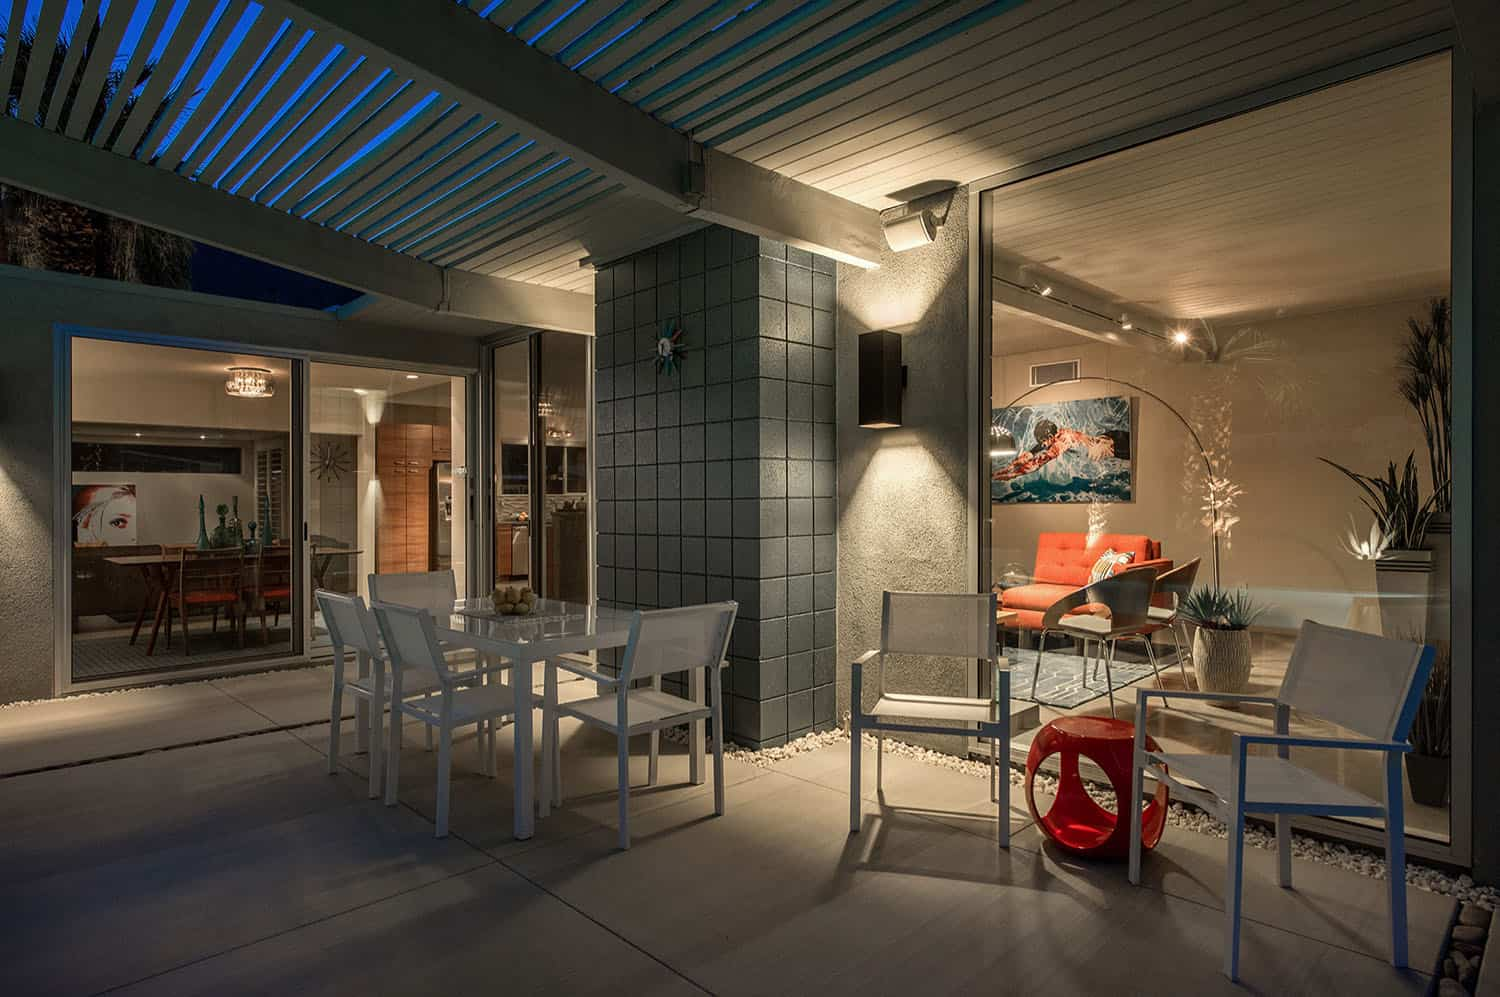 midcentury-patio-outdoor-dining-night